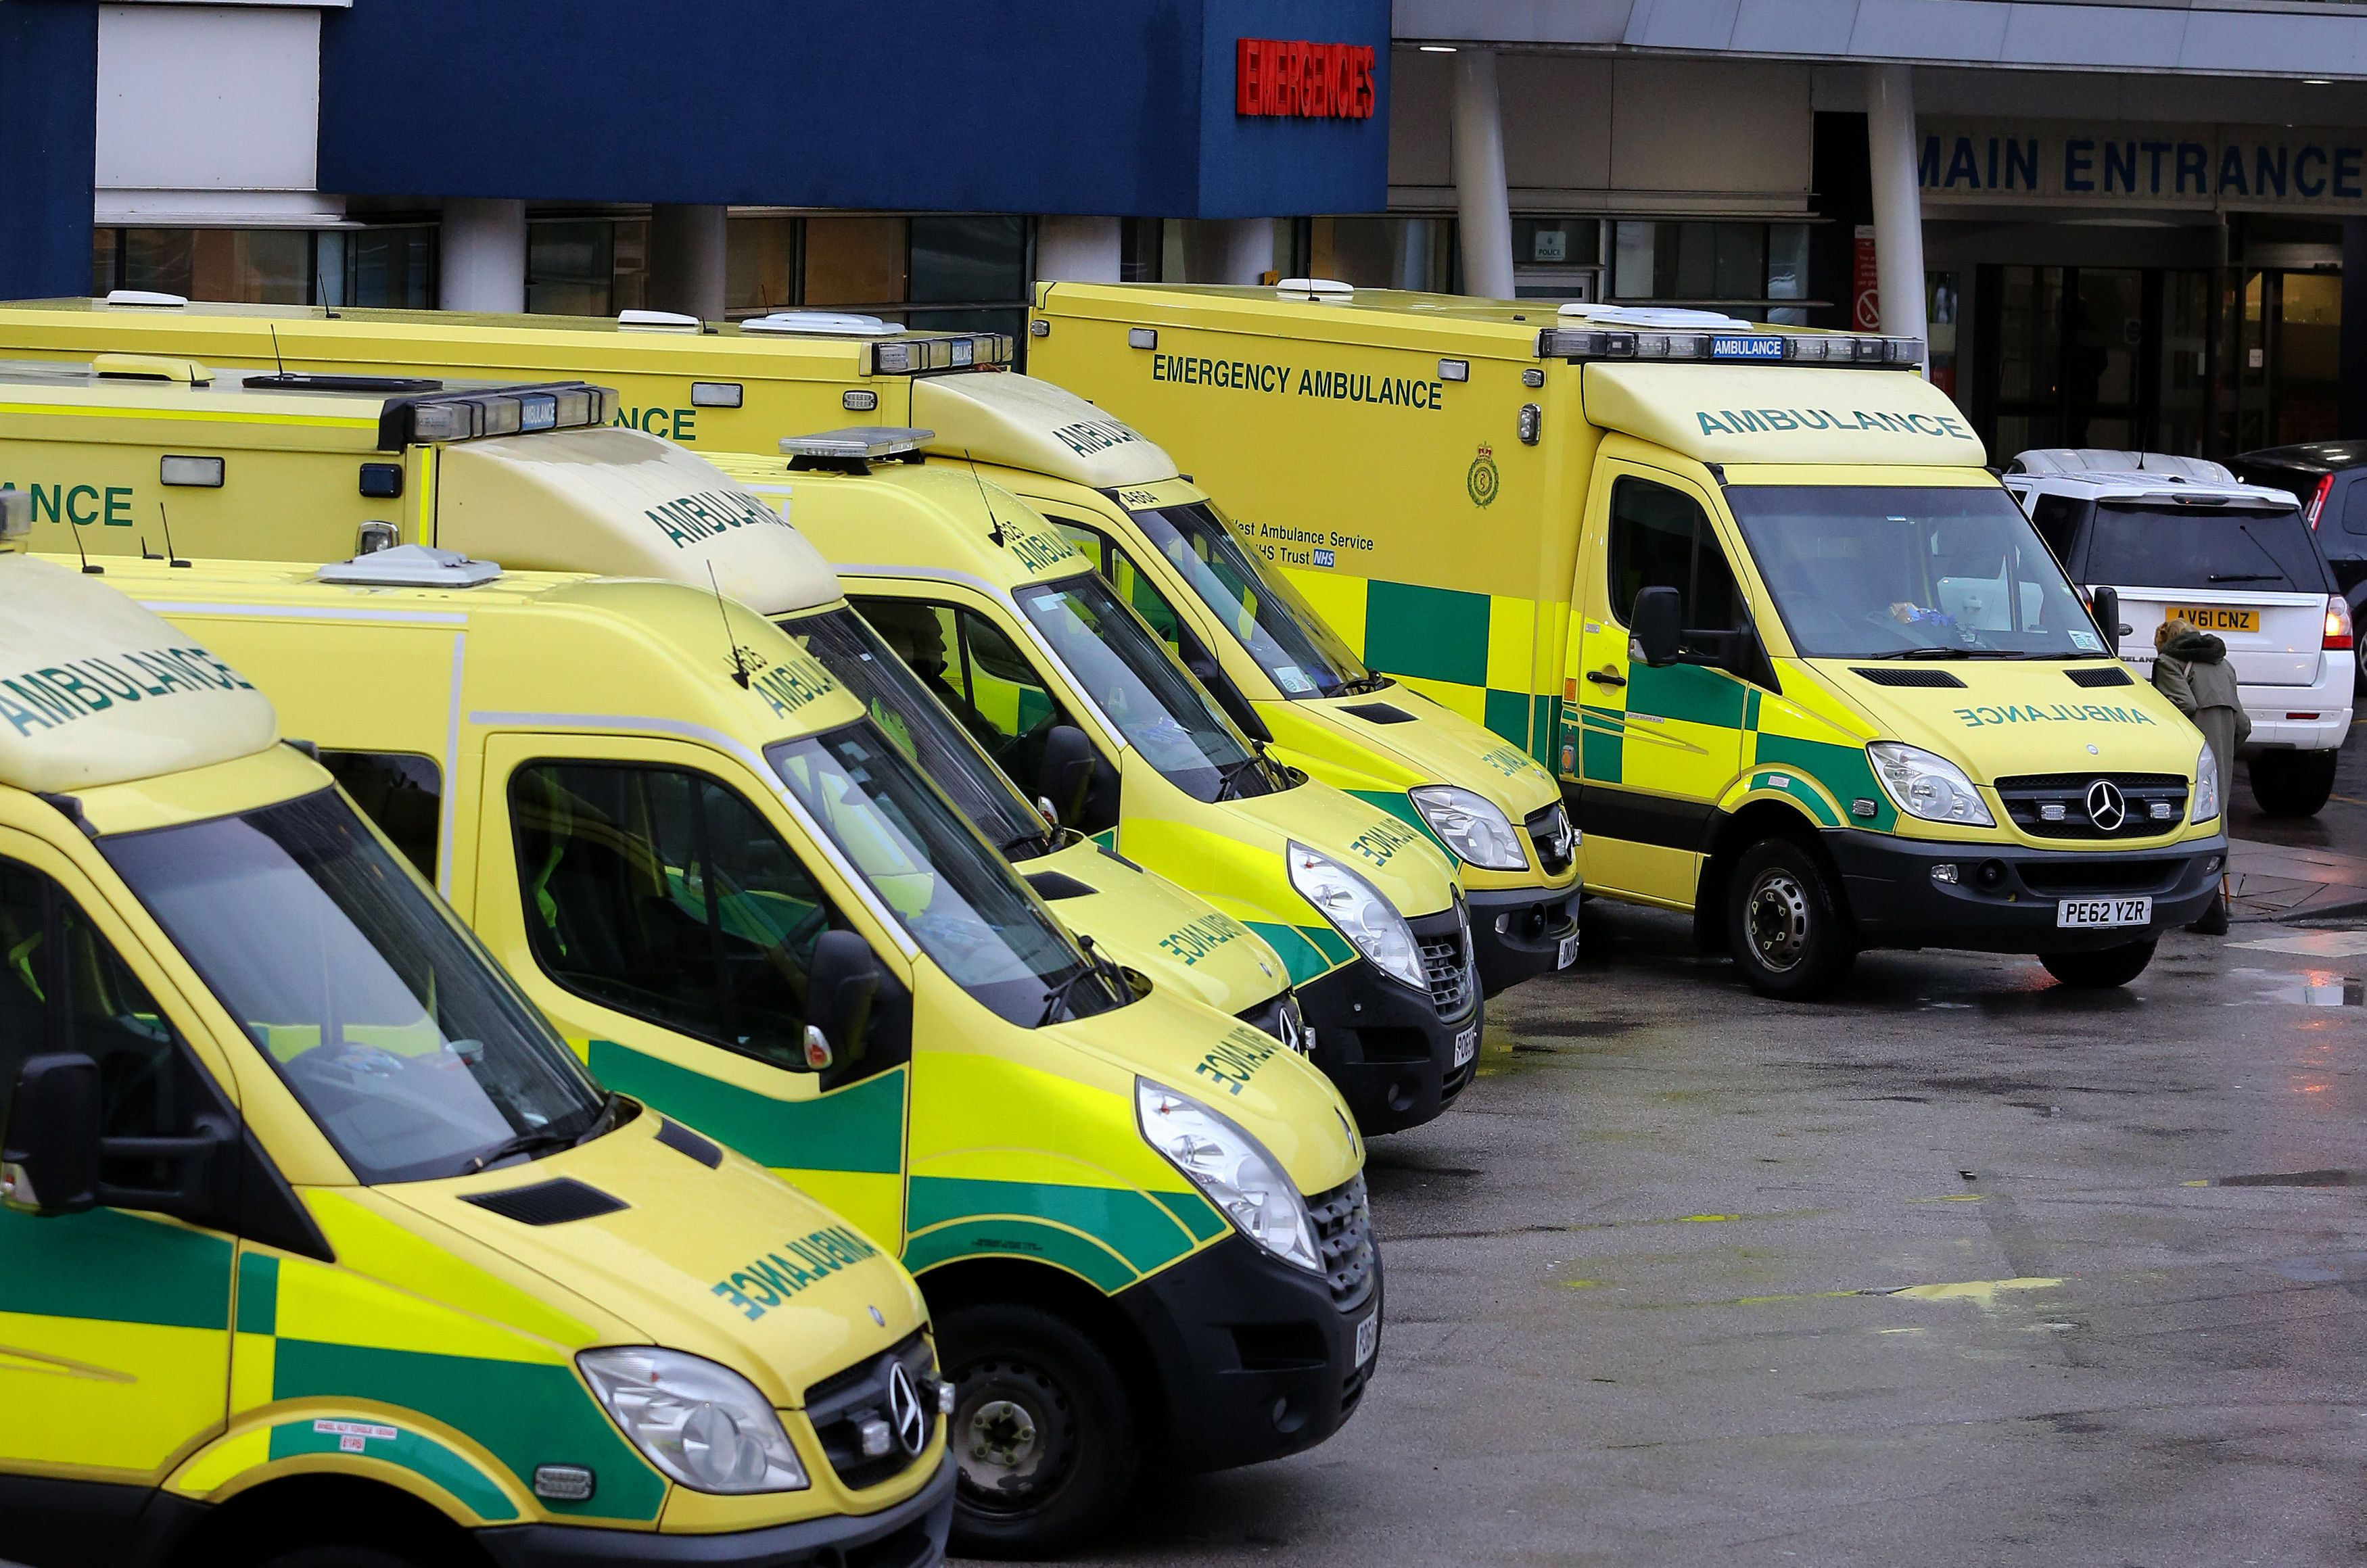 Closing Walk-In Centres Could Heap Even More Pressure On A&E Units, NHS Data